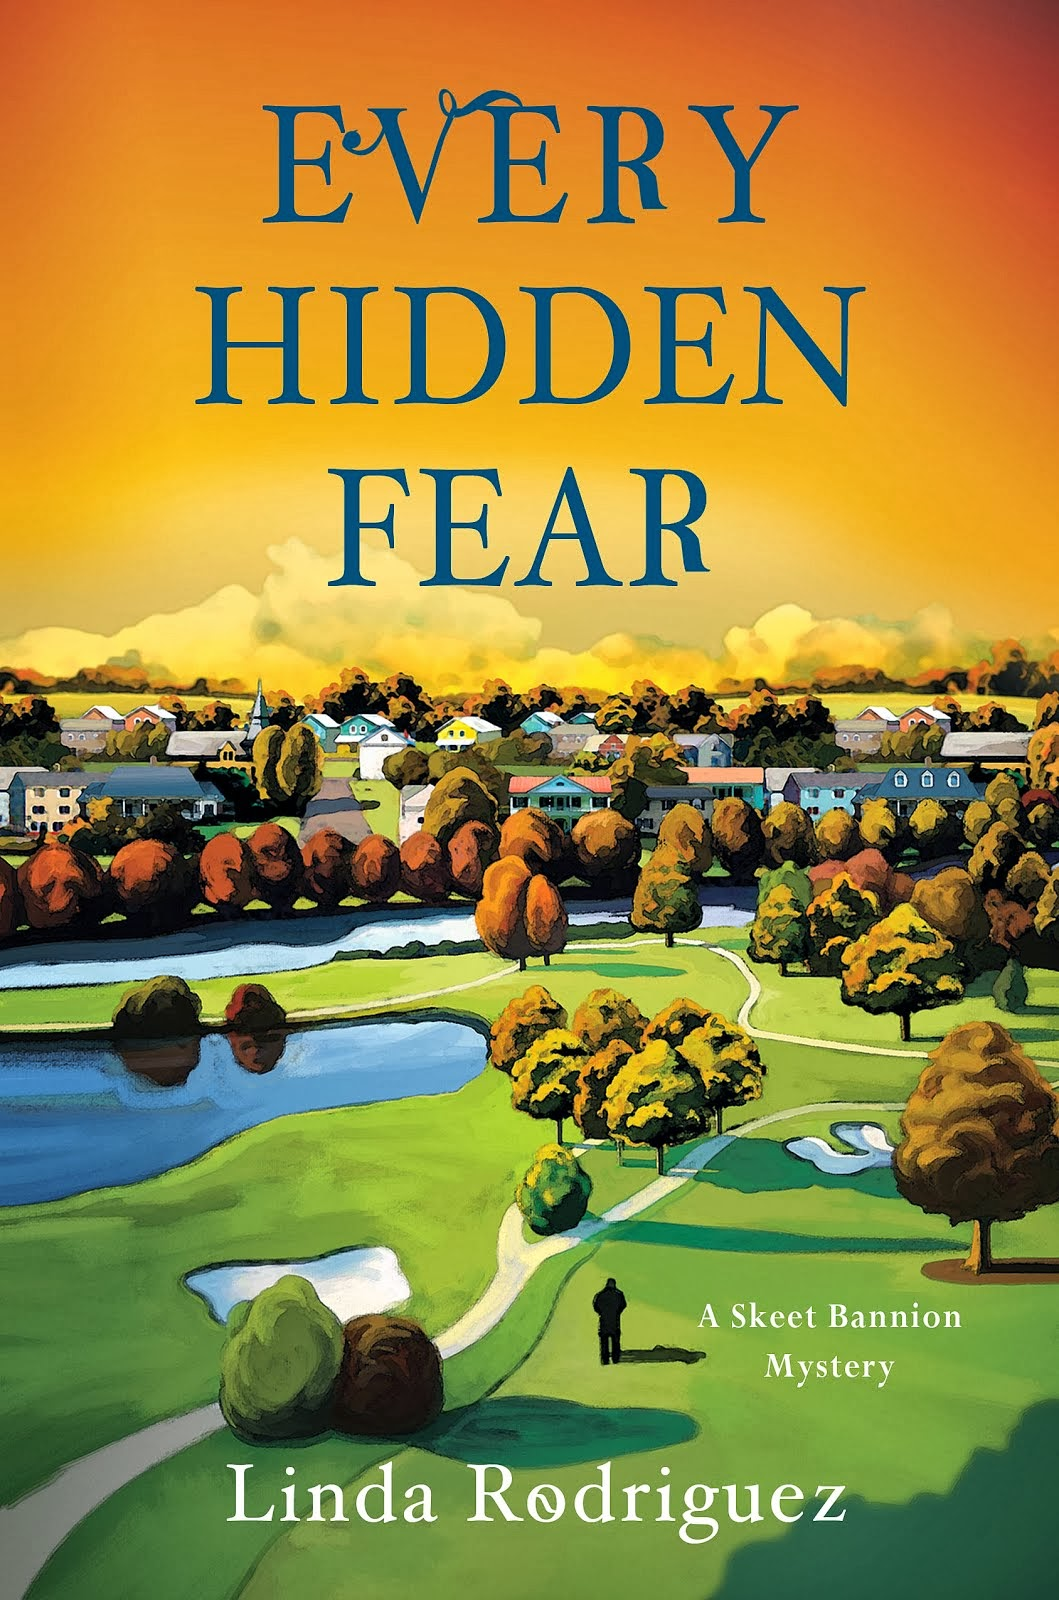 My third Skeet Bannion mystery novel, EVERY HIDDEN FEAR. Click on its image to order.